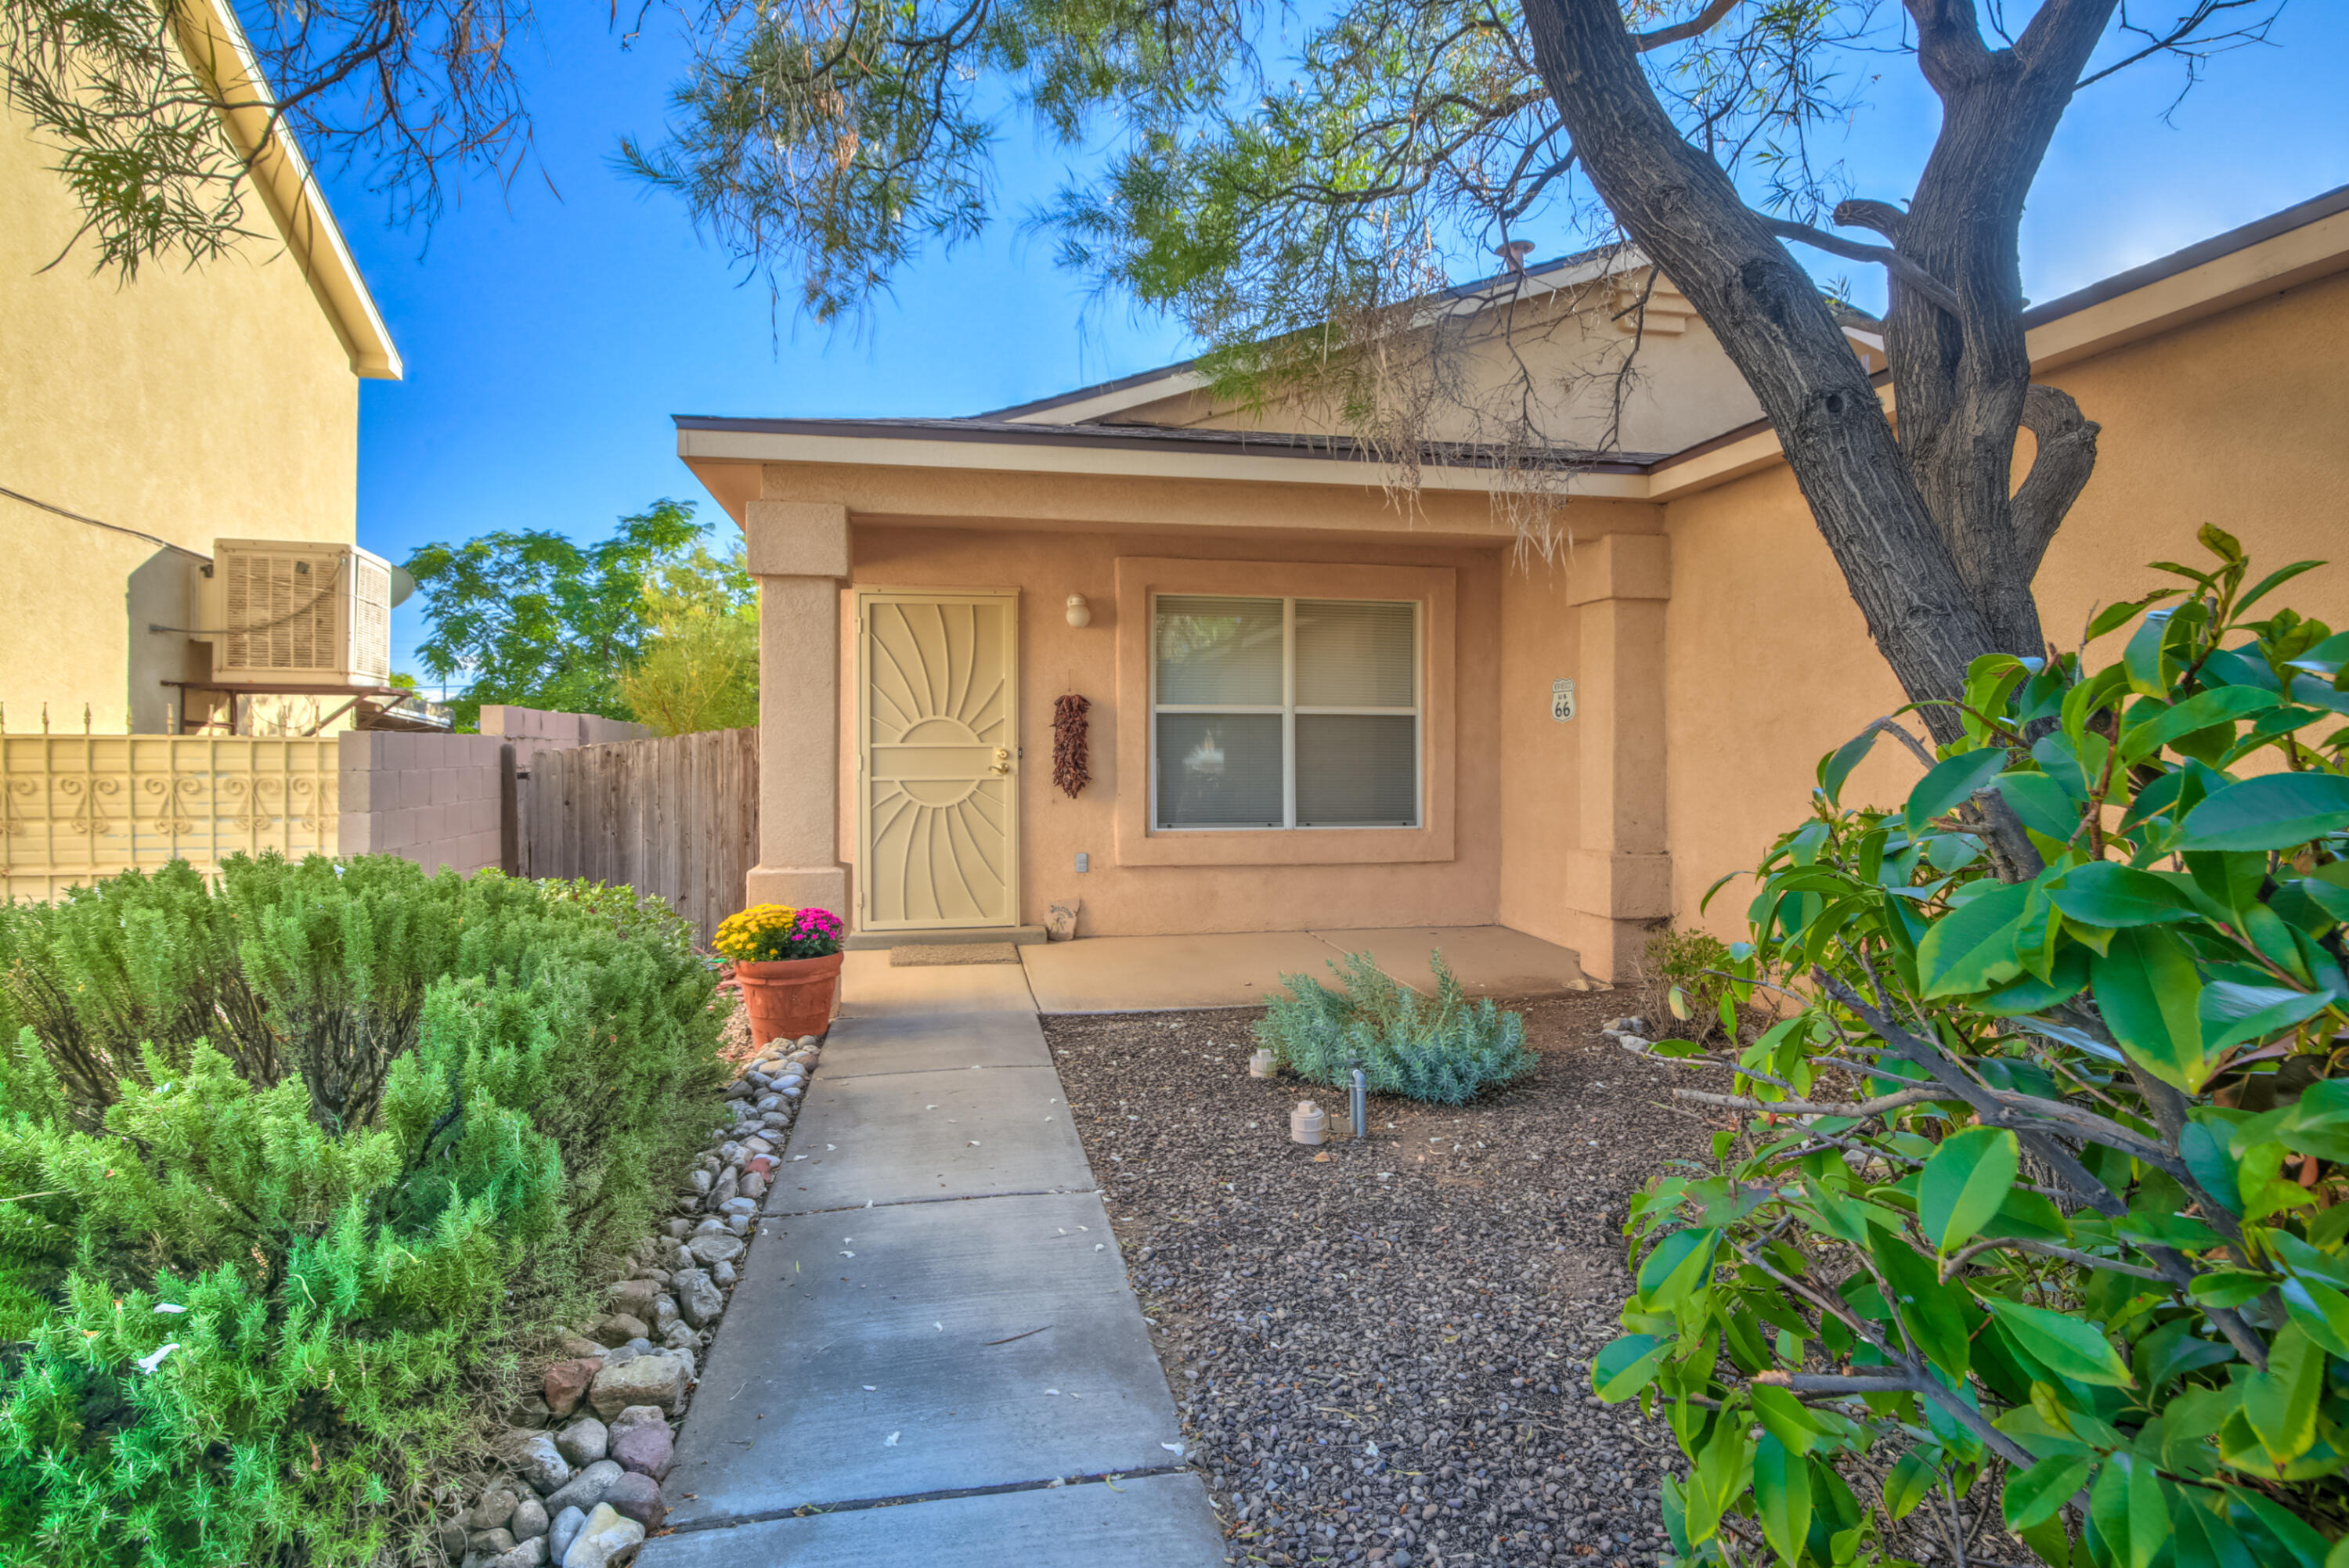 You'll love this cute ranch style home in the SW Heights.  Great location and close to all the conveniences you need.  Open floor plan with kitchen open to the great room.  New hot water heater and new paint and new roof. New dishwasher too!  Nicely sized owners suite with en suite bathroom.  2 guest room share the guest bathroom.  Easy care landscaping and convenient to everything you need.  Hurry to see one!!